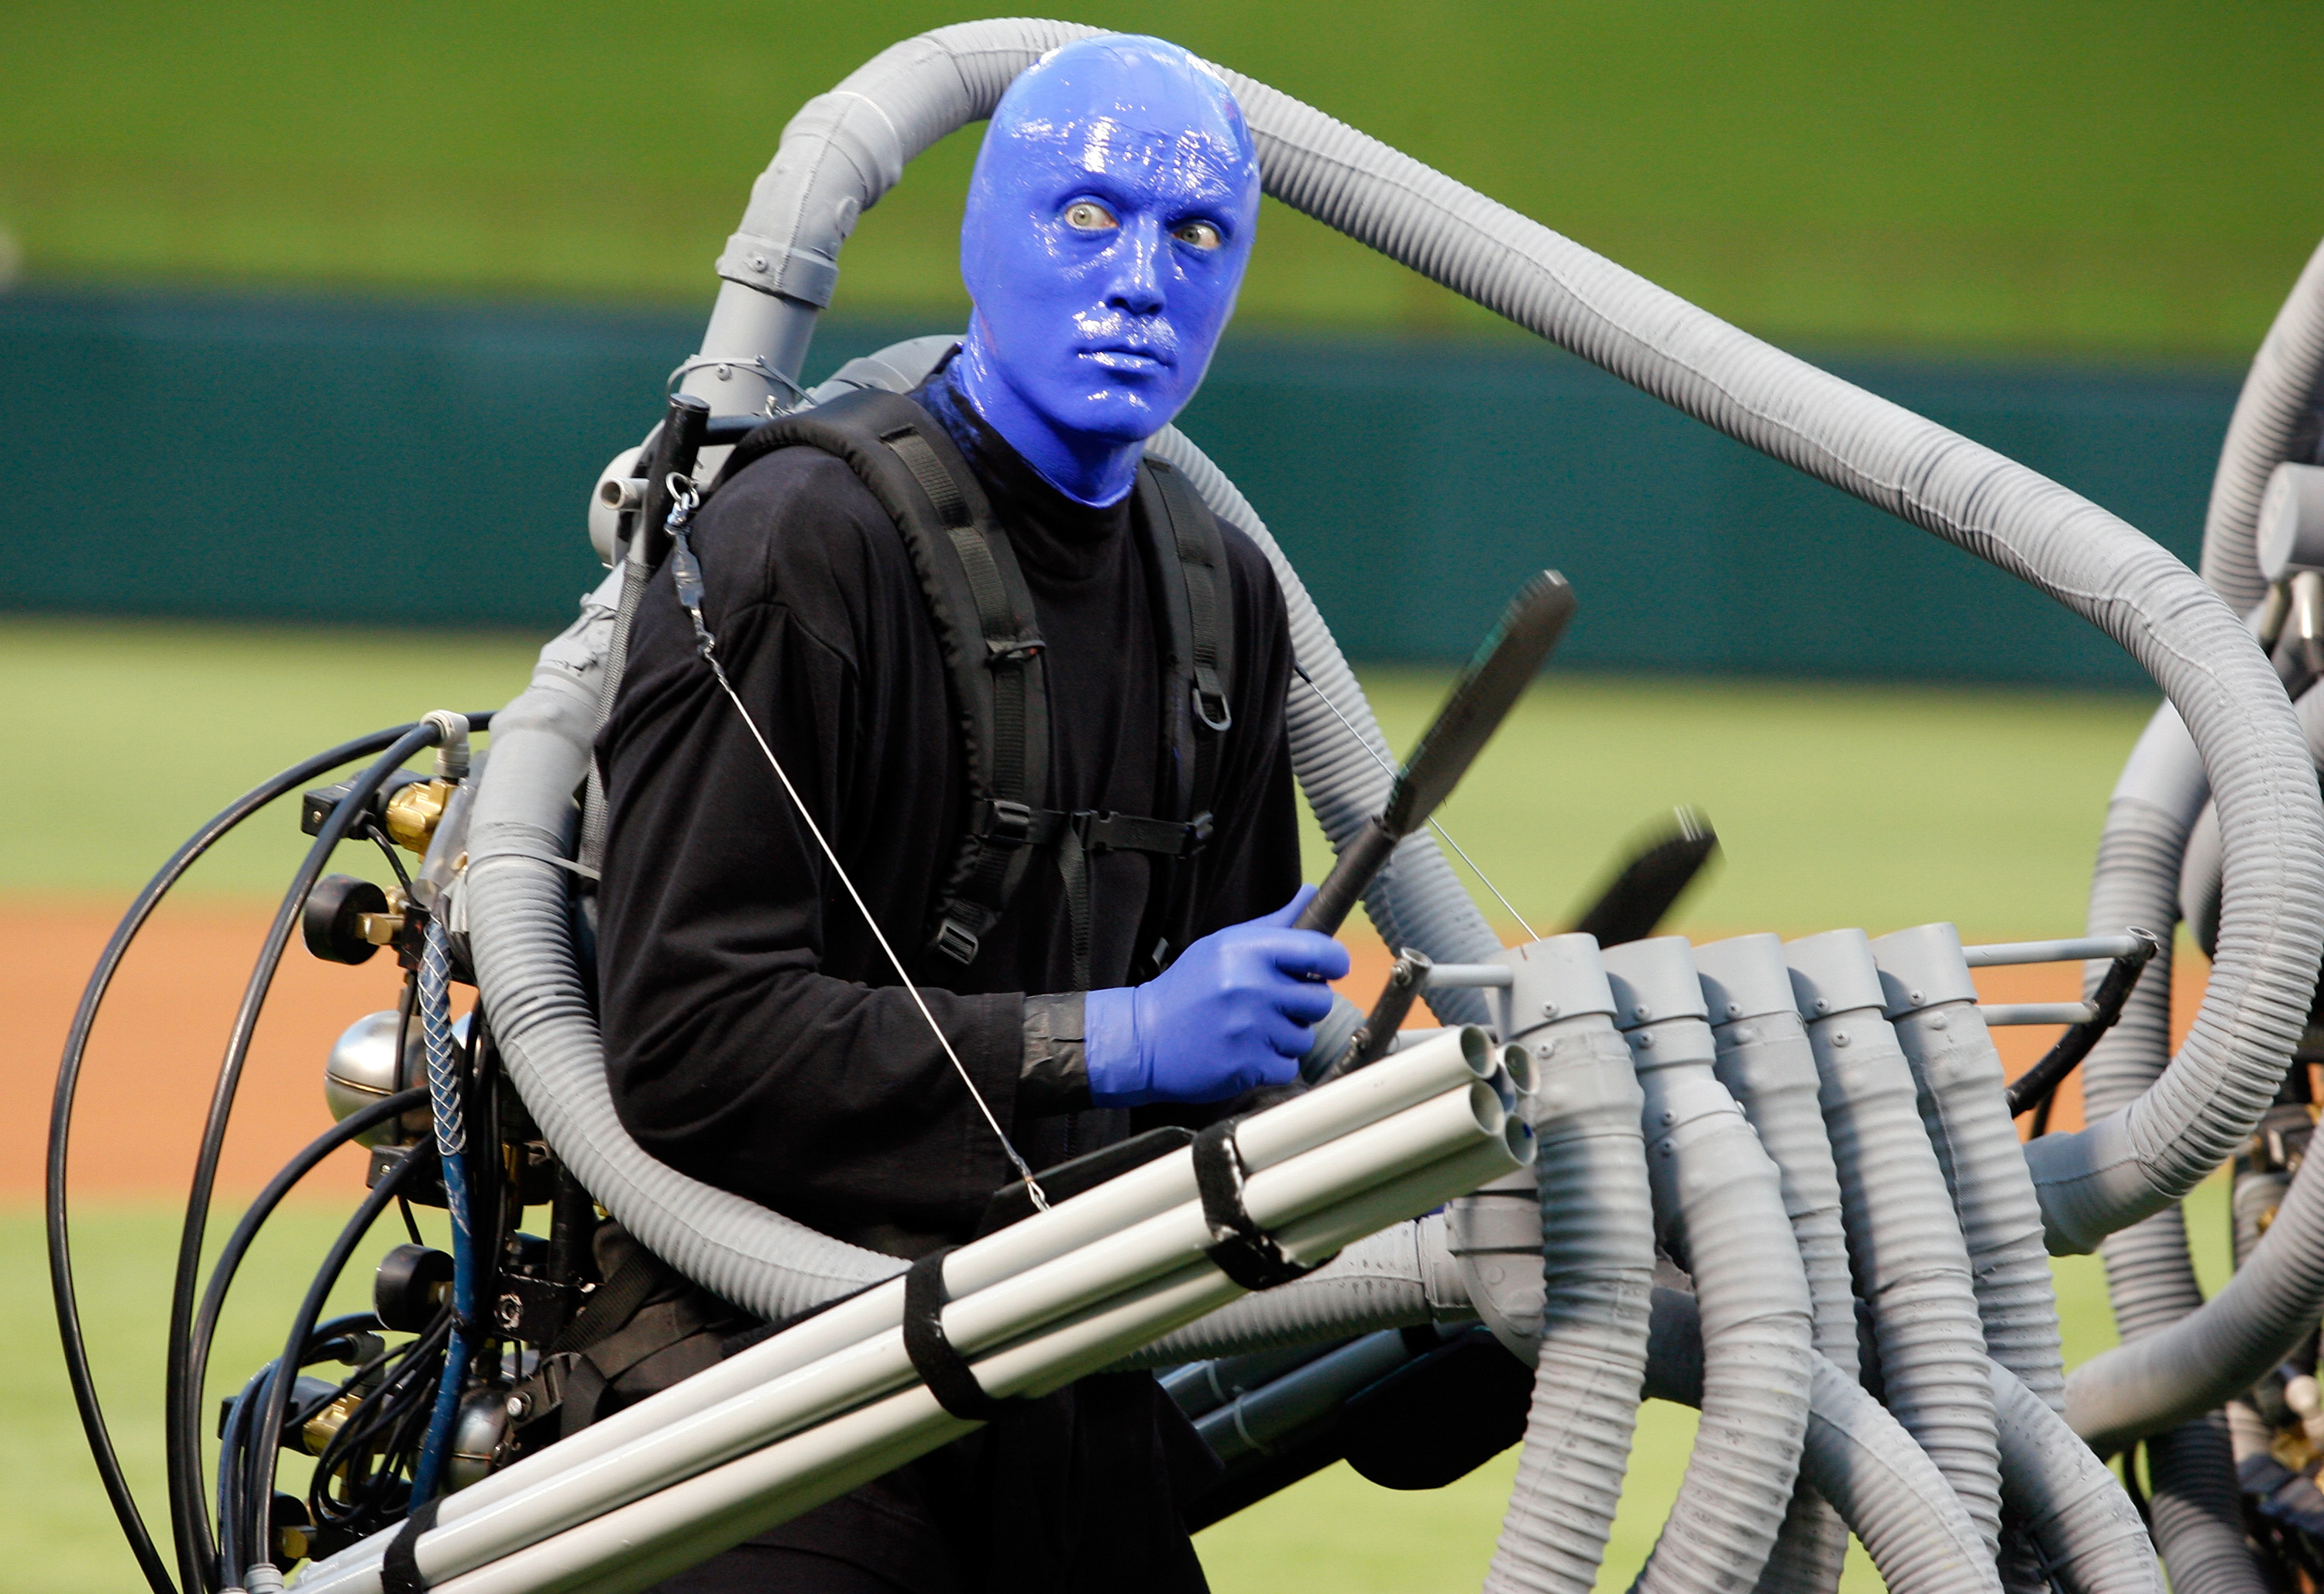 ARLINGTON, TX - SEPTEMBER 10:  A member of Blue Man Group performs the National Anthem before the New York Yankees take on the Texas Rangers on September 10, 2010 at Rangers Ballpark in Arlington, Texas.  (Photo by Tom Pennington/Getty Images)